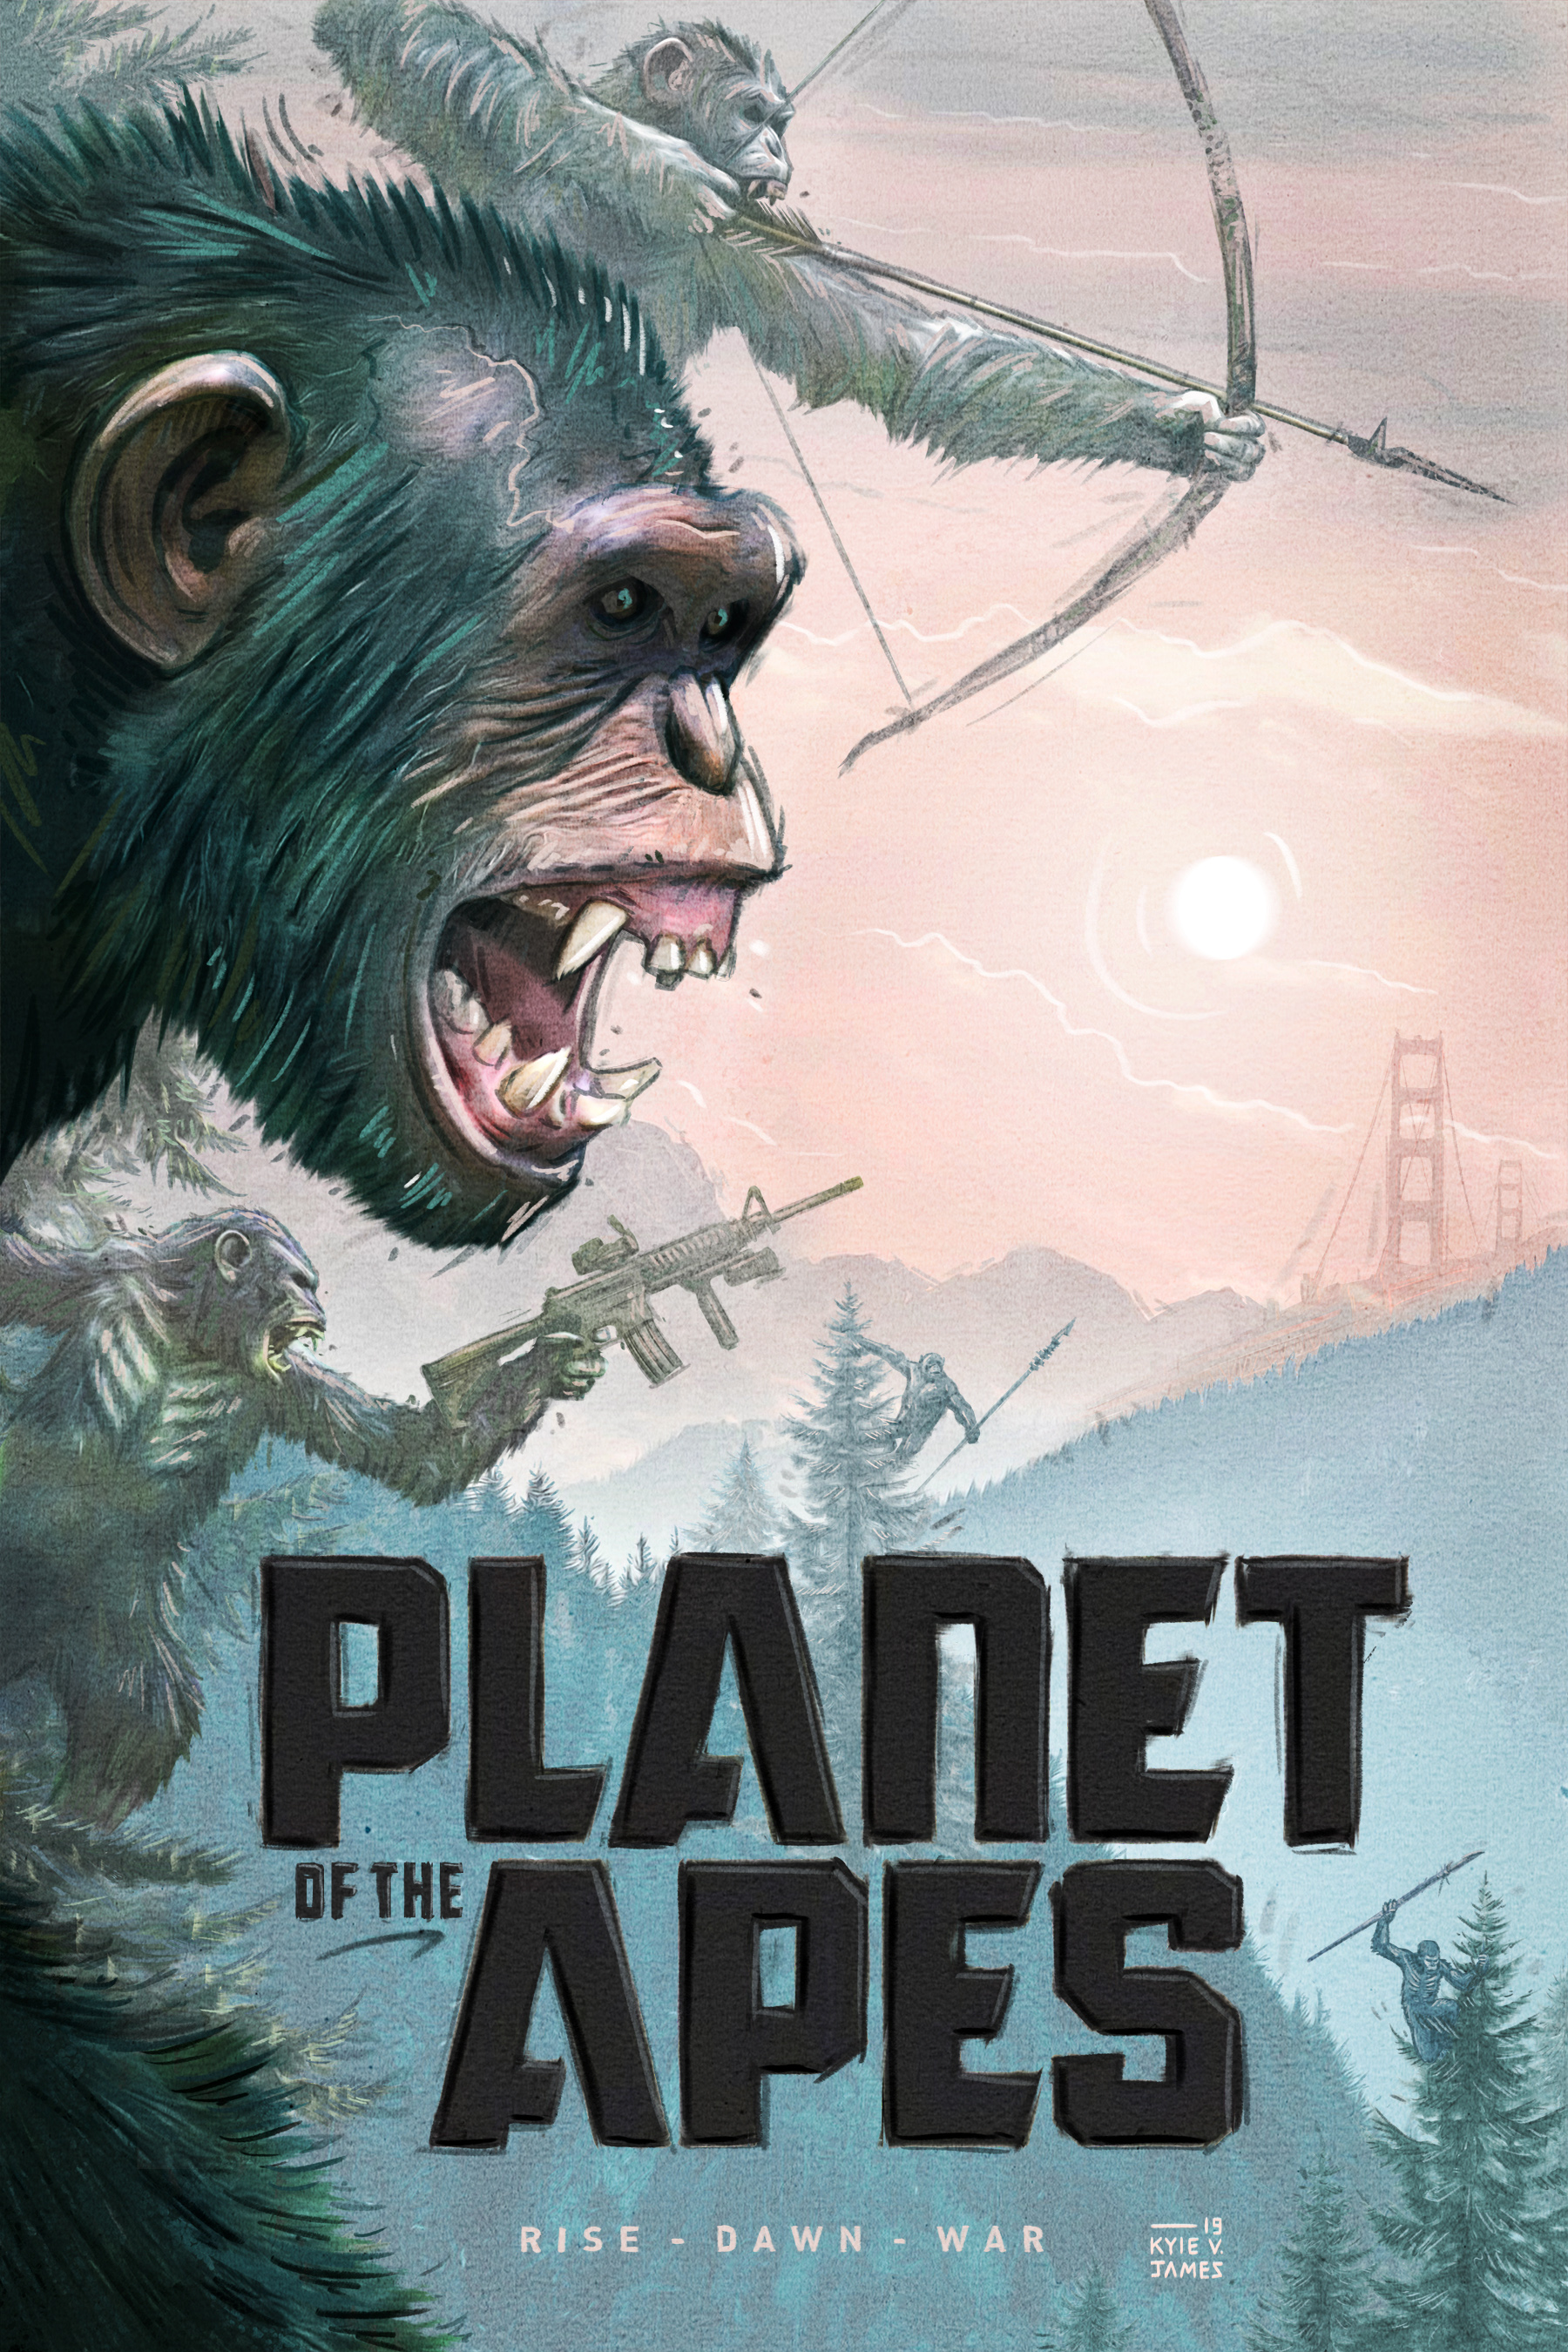 Planet of the Apes - Poster Redesign